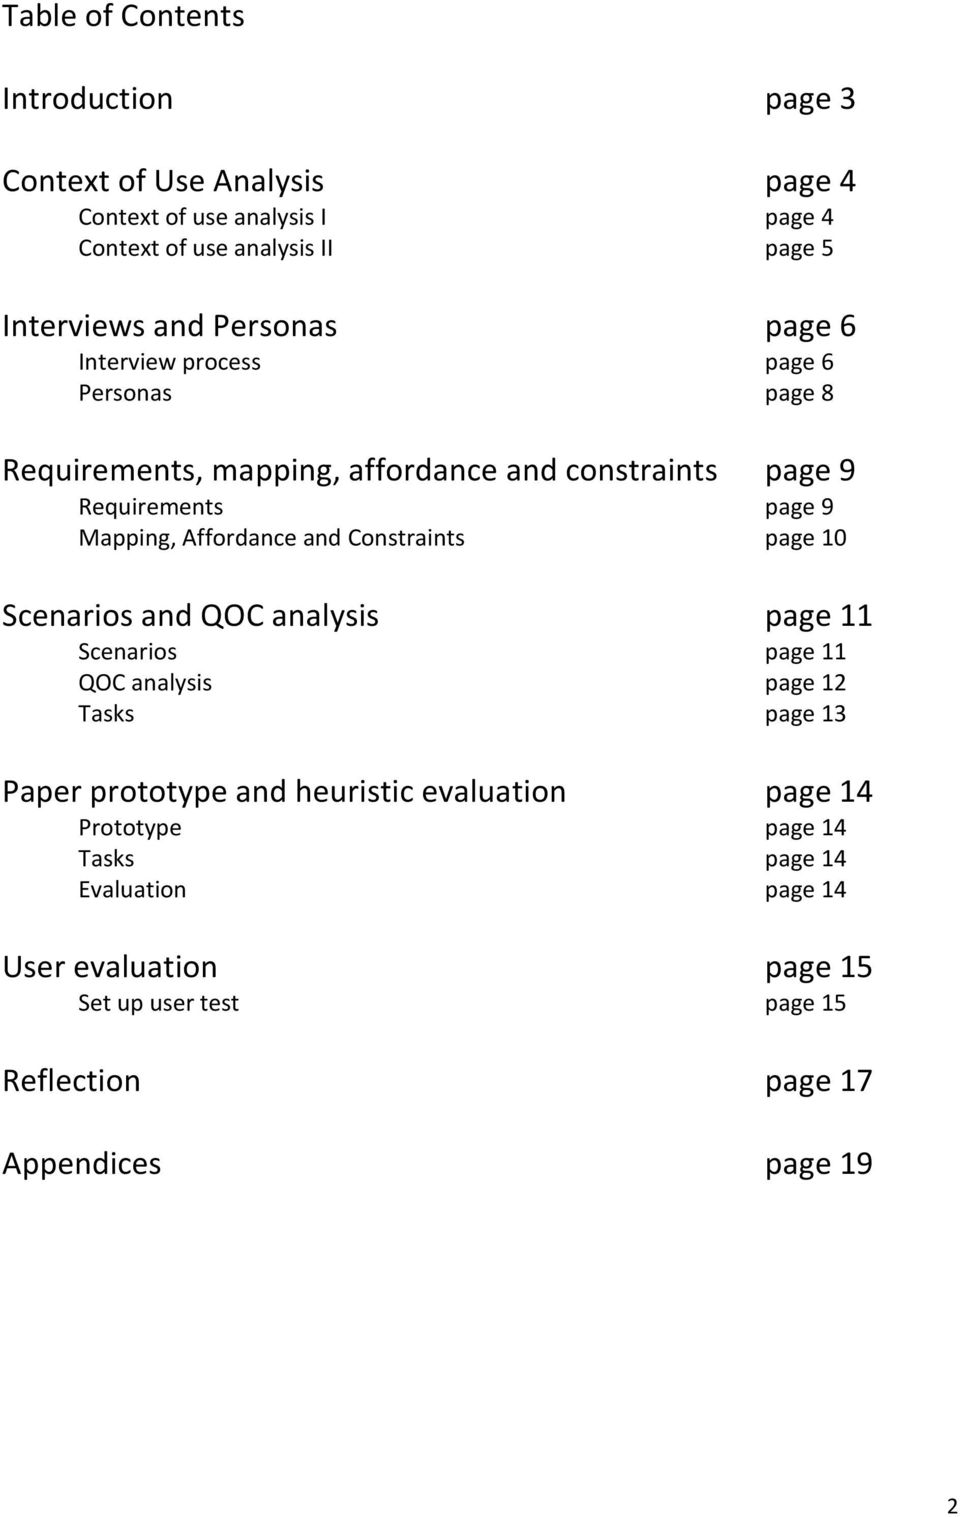 Affordance and Constraints page 10 Scenarios and QOC analysis page 11 Scenarios page 11 QOC analysis page 12 Tasks page 13 Paper prototype and